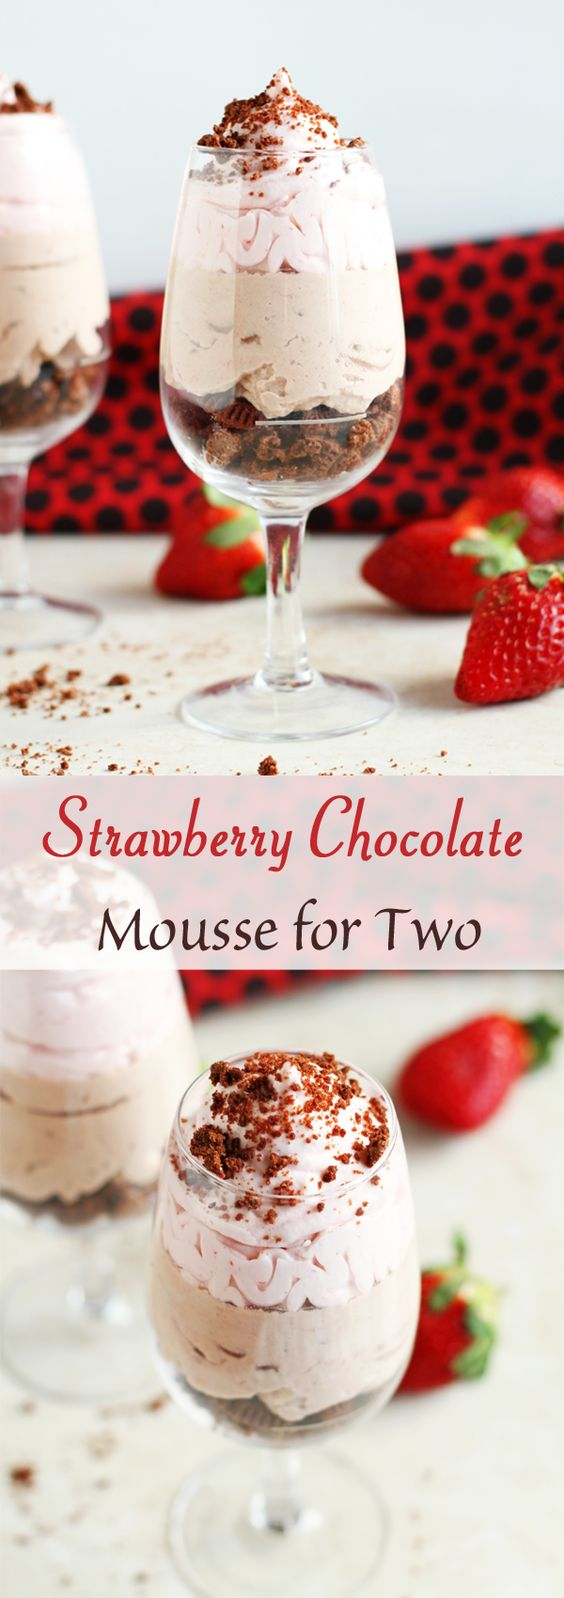 Chocolate Strawberry Mousse for Two Recipe via Ilona's Passion - Simple Chocolate and Strawberry Mousse recipe is perfect for Valentine's Day. Served with chocolate cookies and two layers of whipped cream. A dessert for Two!